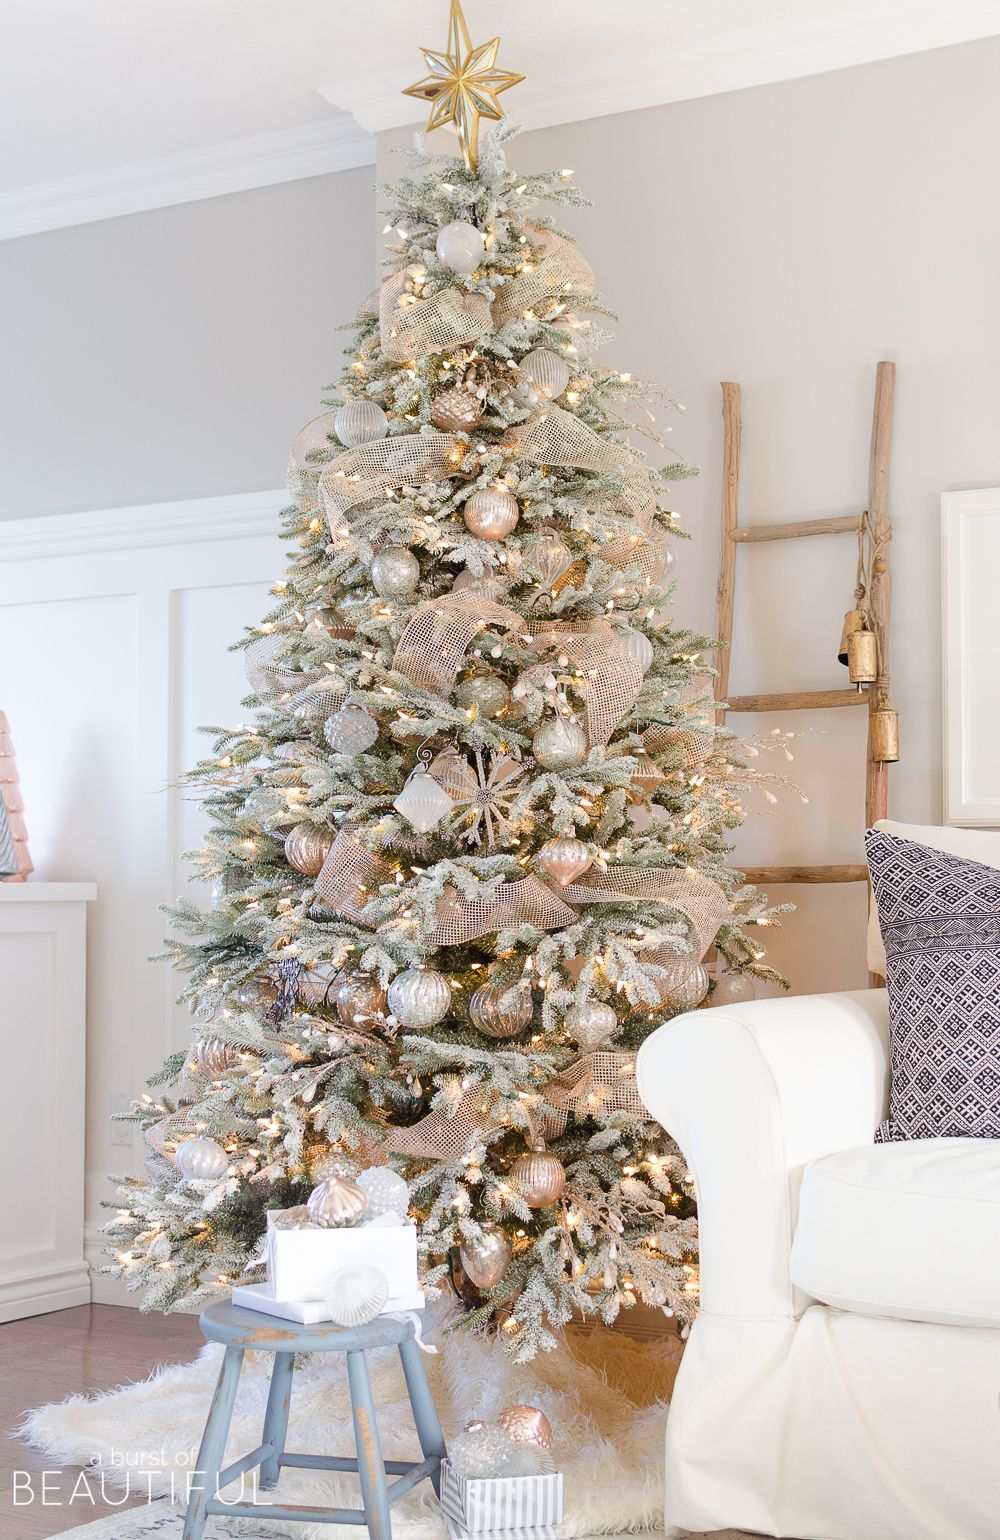 A Snowy Flocked Christmas Tree Decorated In Silver And Rose Gold